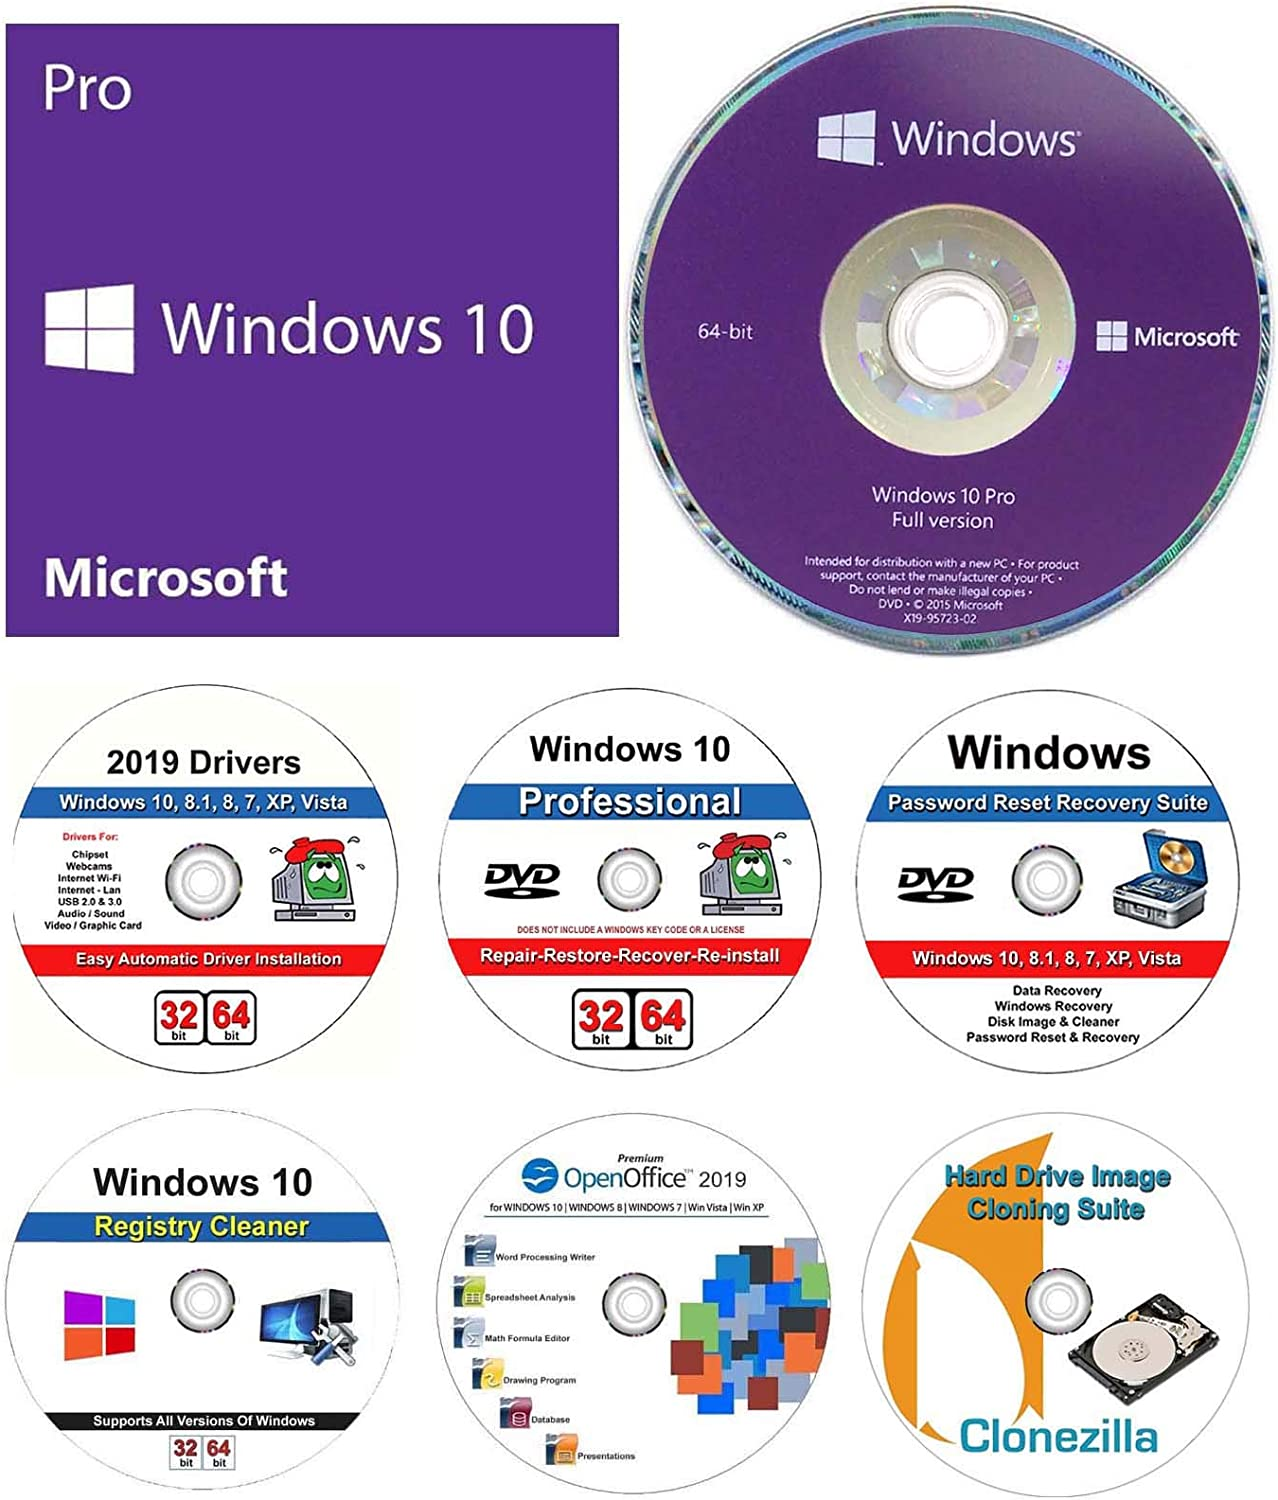 Windows 10 Professional 64 bit OEM DVD + Windows 10 repair recover restore DVD + 2019 Drivers + Password Recovery + Registry Cleaner + Open Office 2019 and Clonzilla Cloning Suite. 7 in 1 Bundle